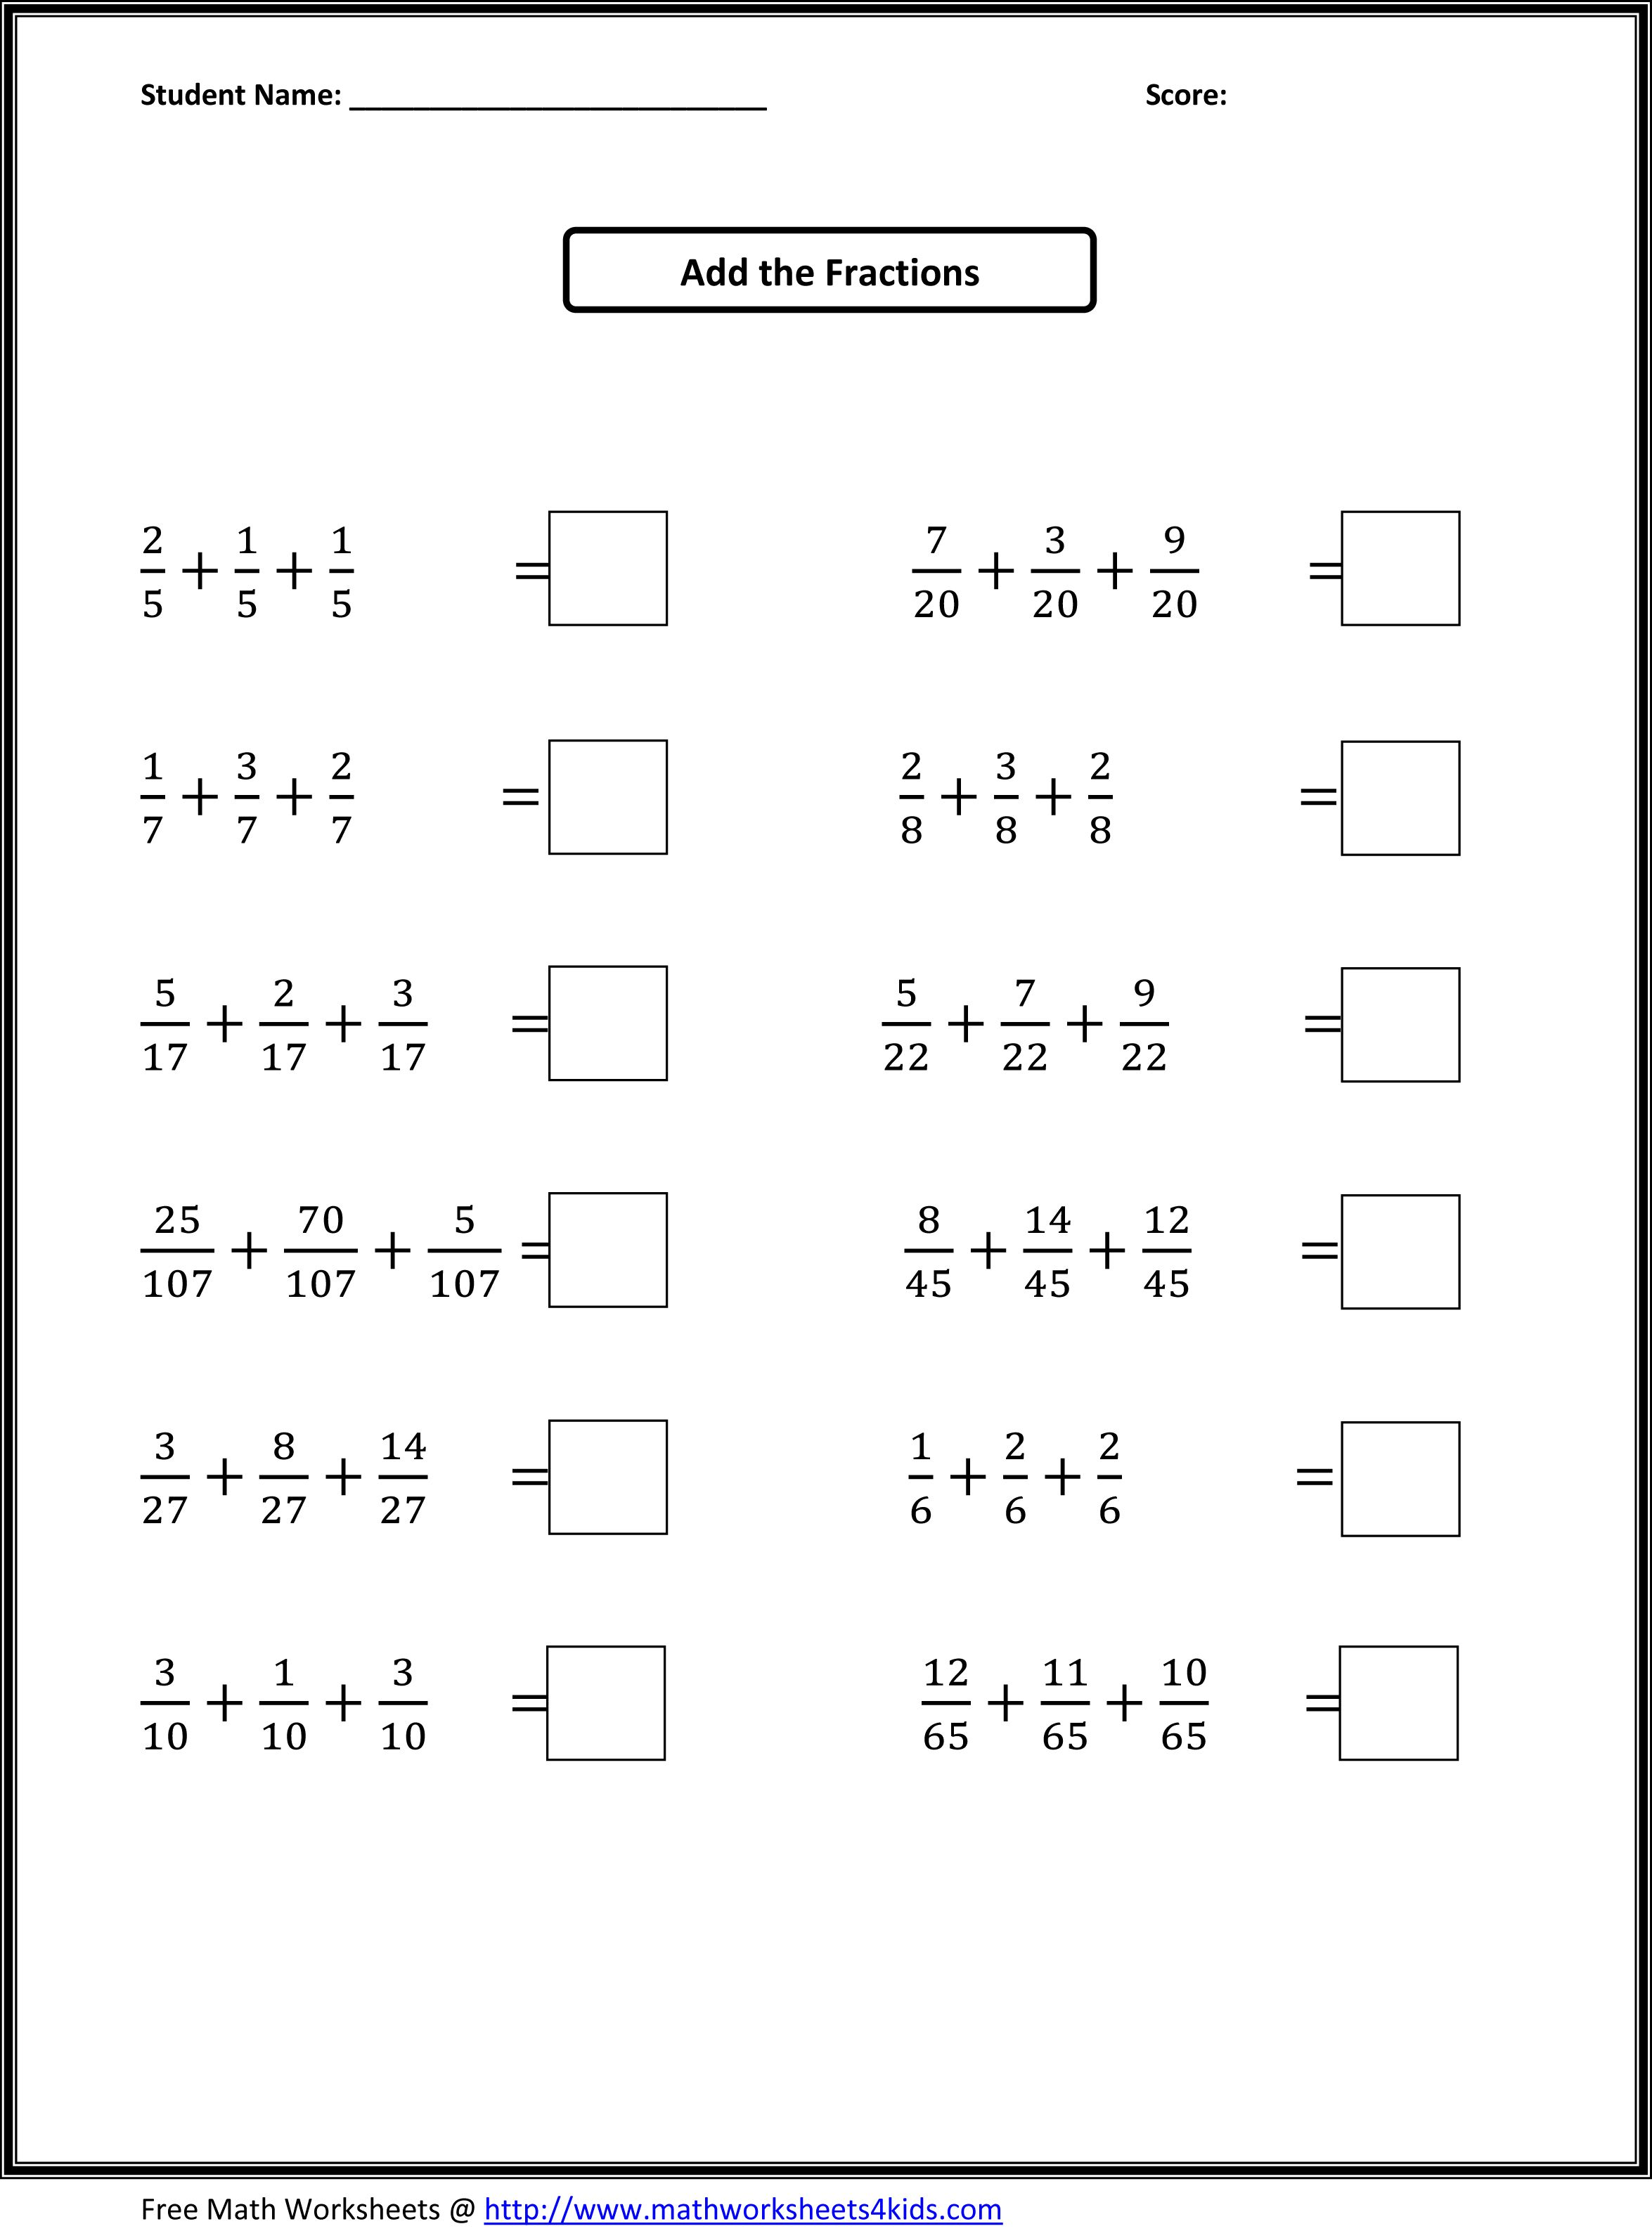 Worksheets Fourth Grade Math Worksheet worksheets for all early ed grades topics of math pinterest and adding fractions